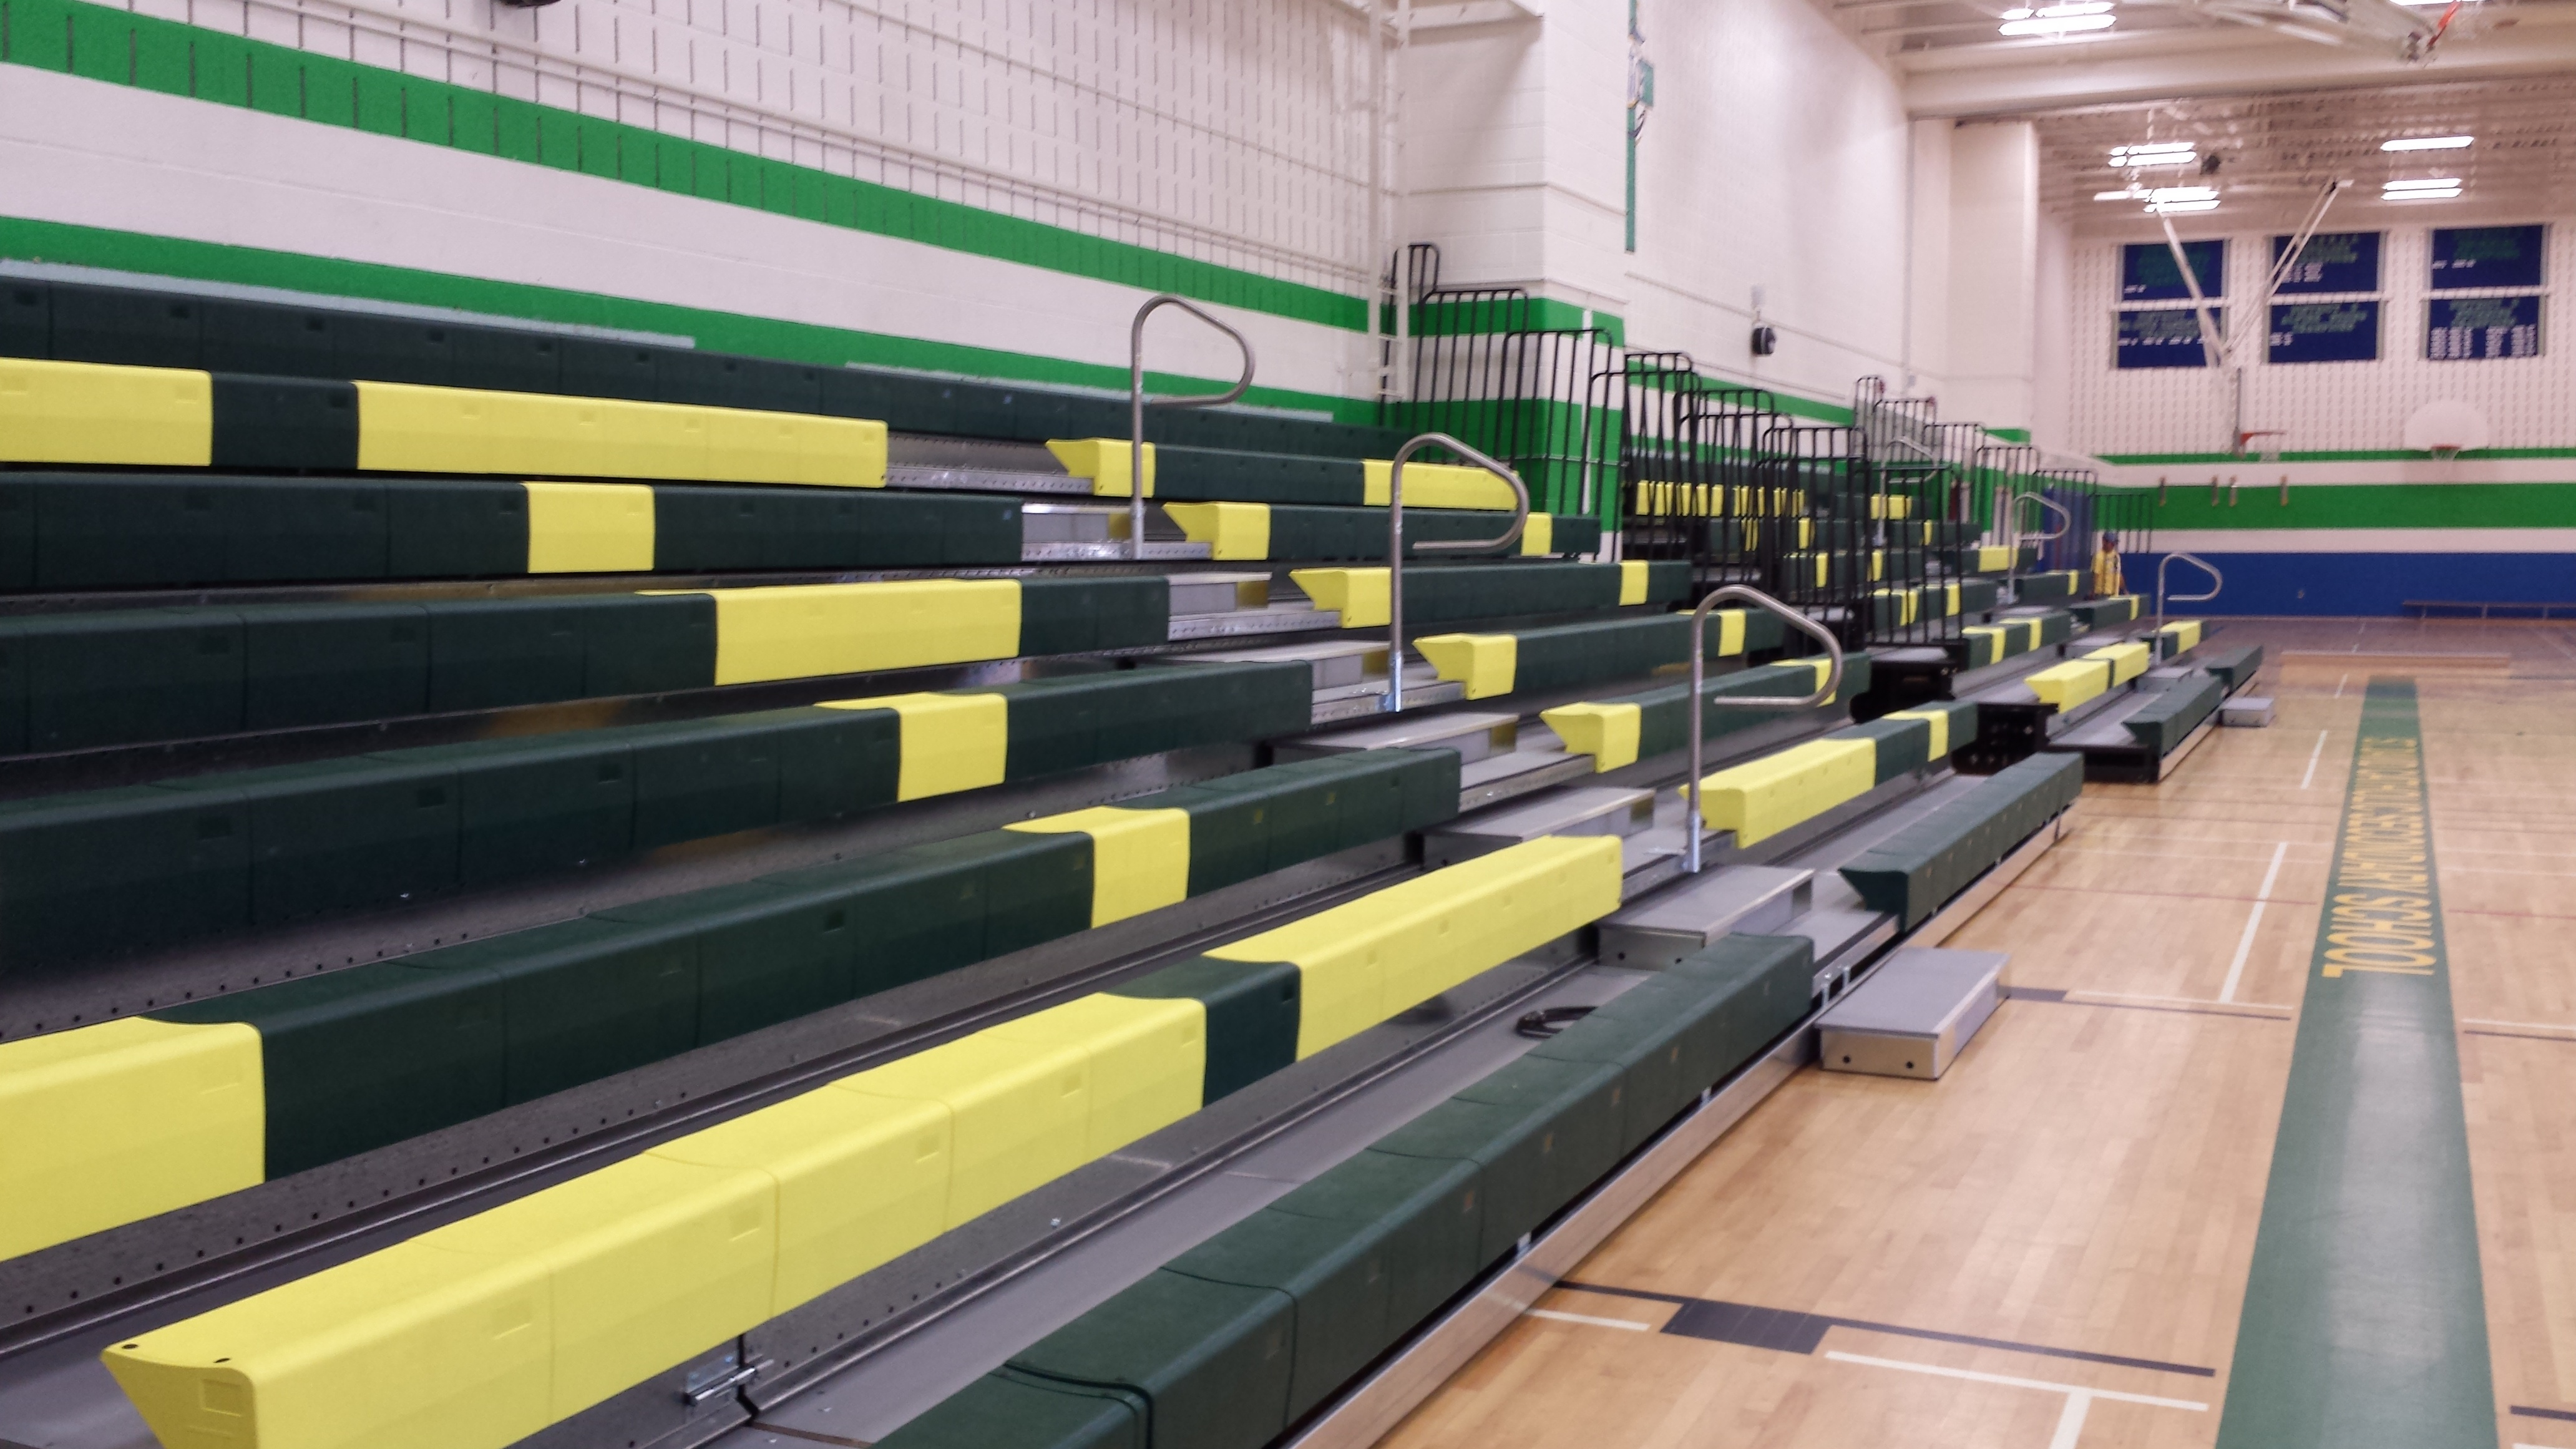 side-view-open-telescopic-bleachers-st-david-css